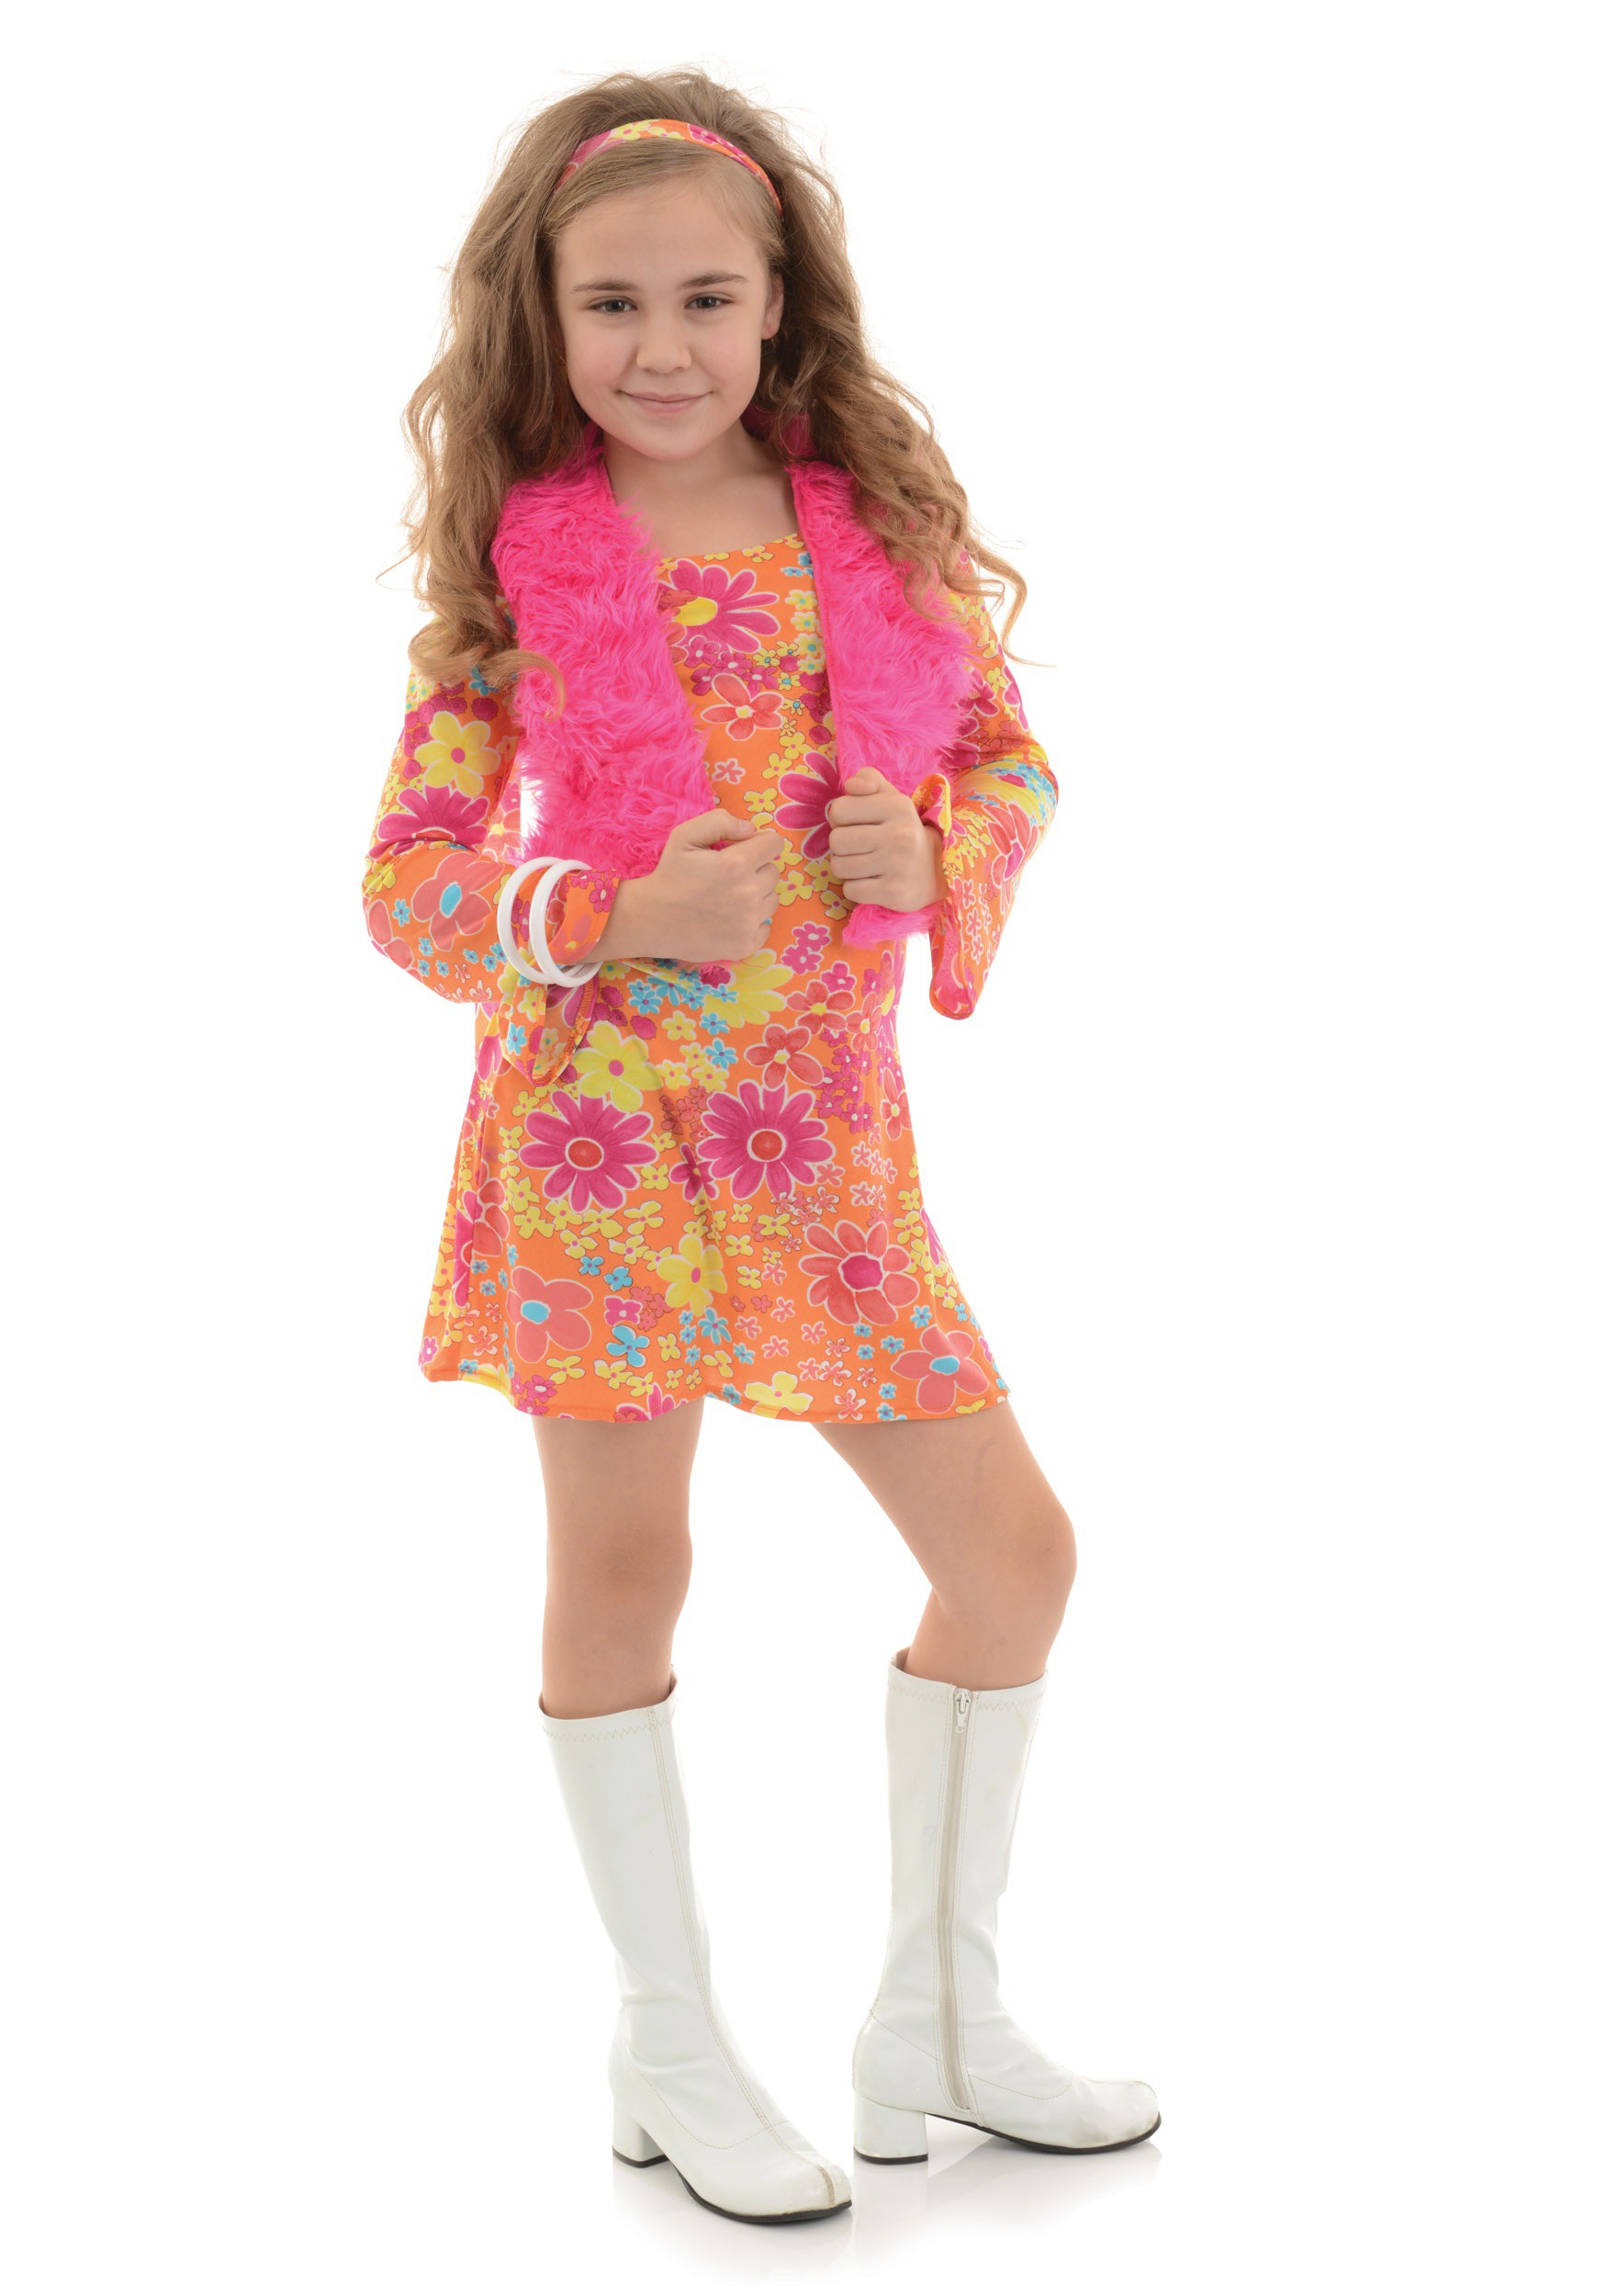 flower power 70s girl's costume